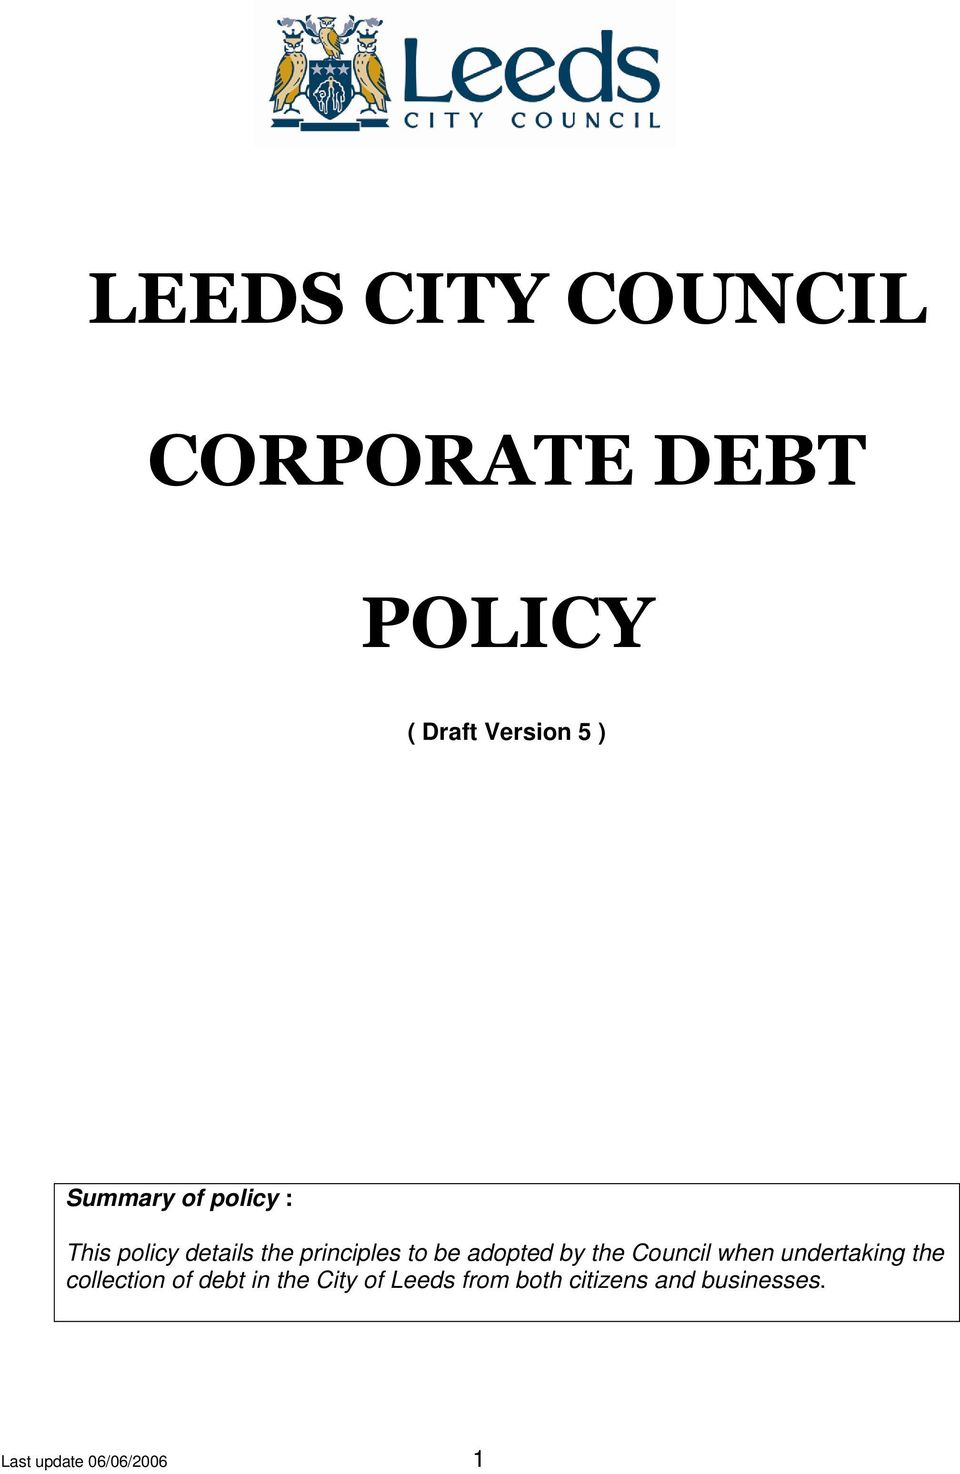 adopted by the Council when undertaking the collection of debt in